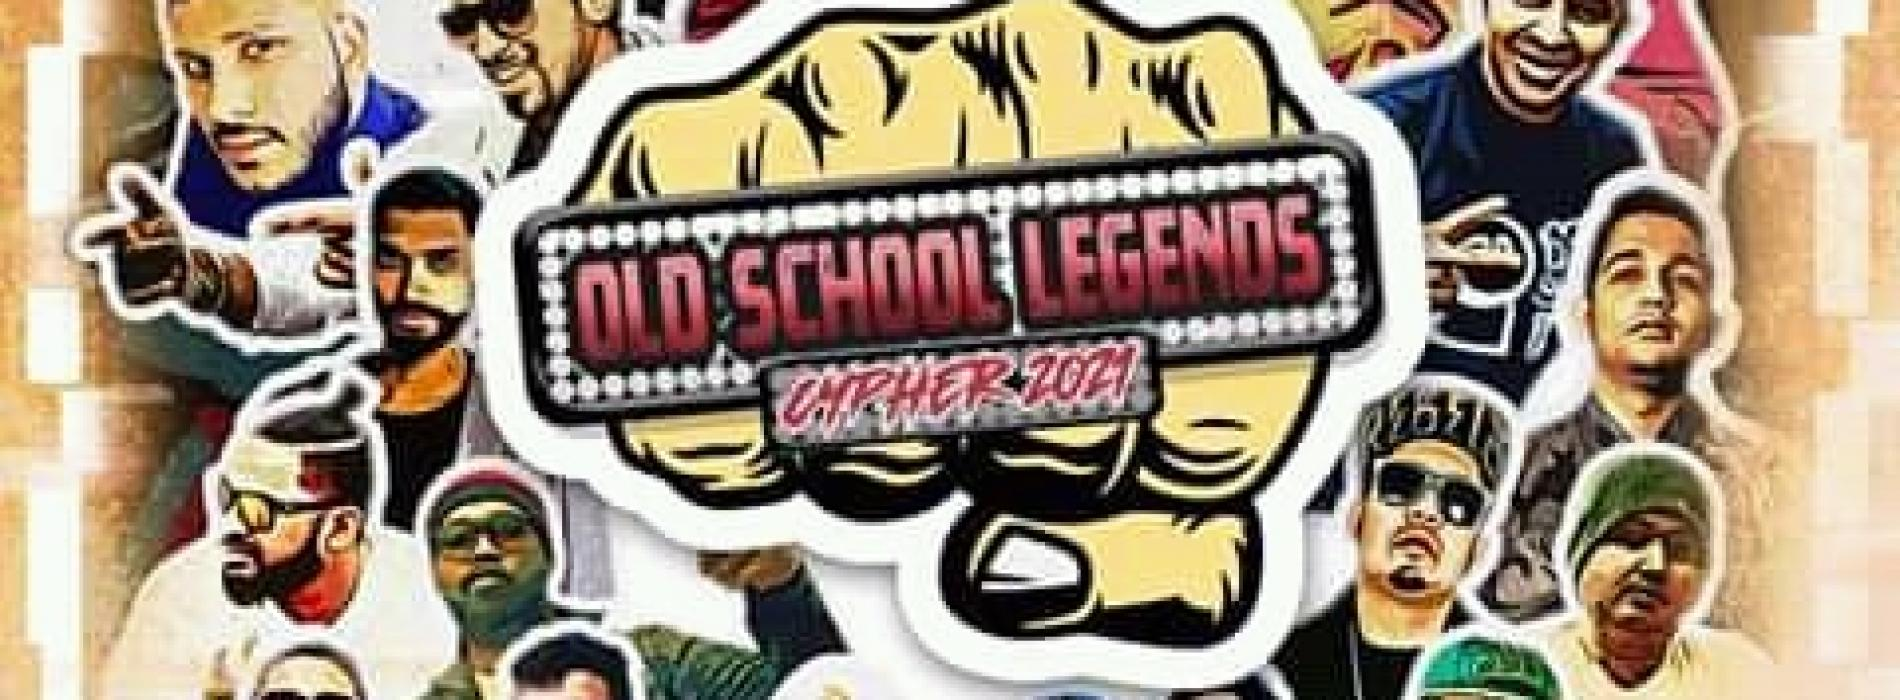 New Music : SL Old School Legends's Cypher 2021